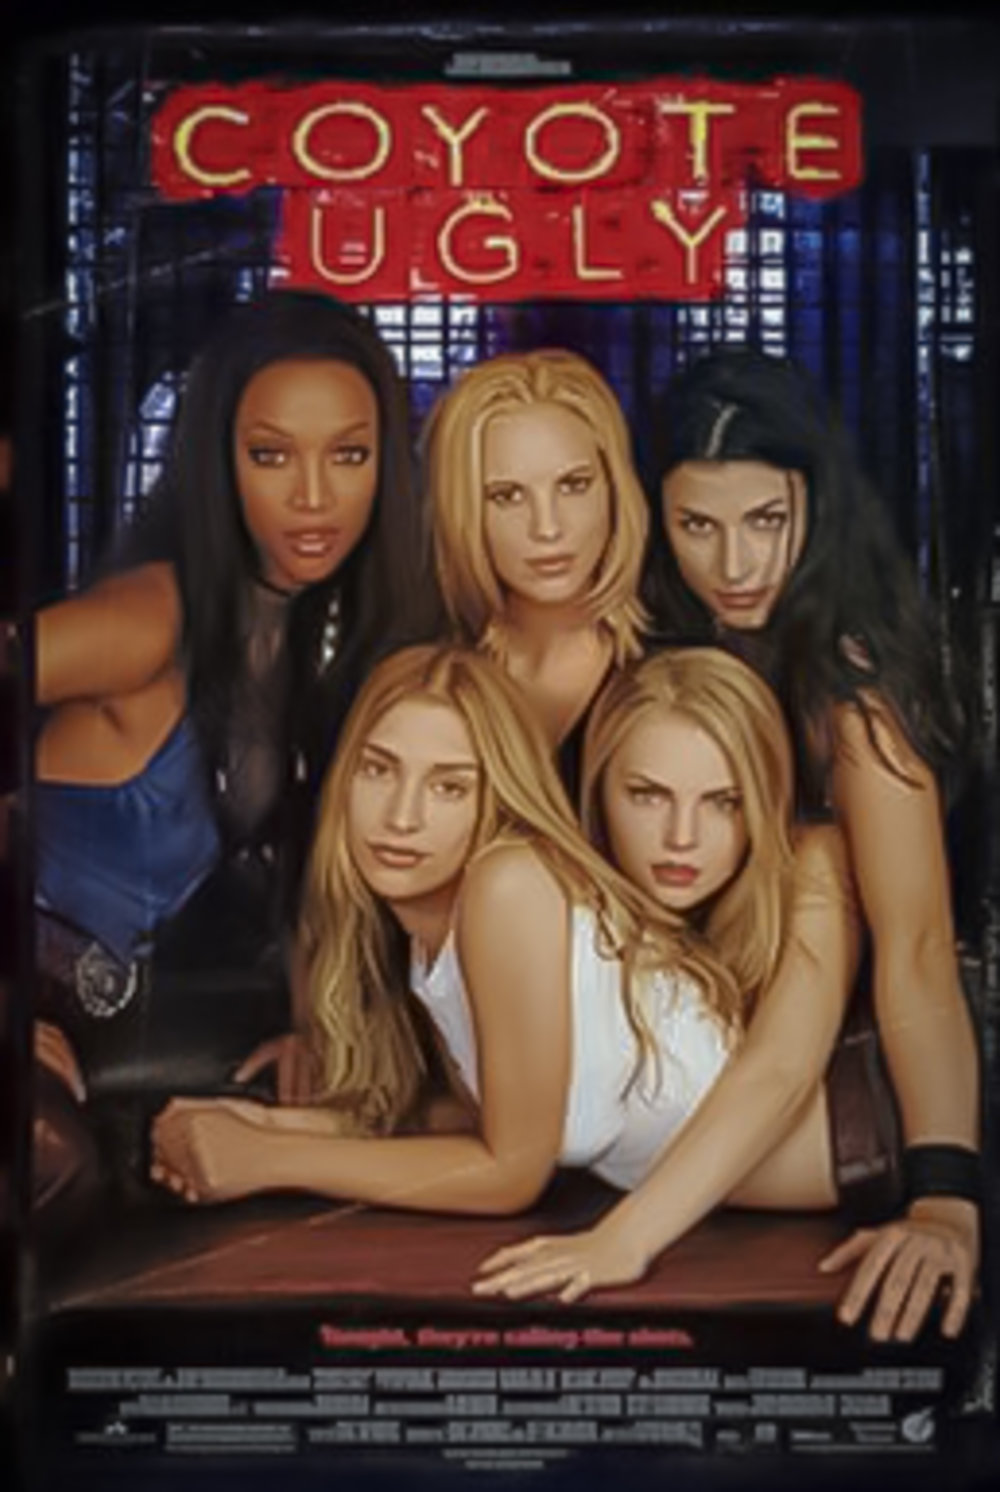 Coyote_ugly_poster.jpg